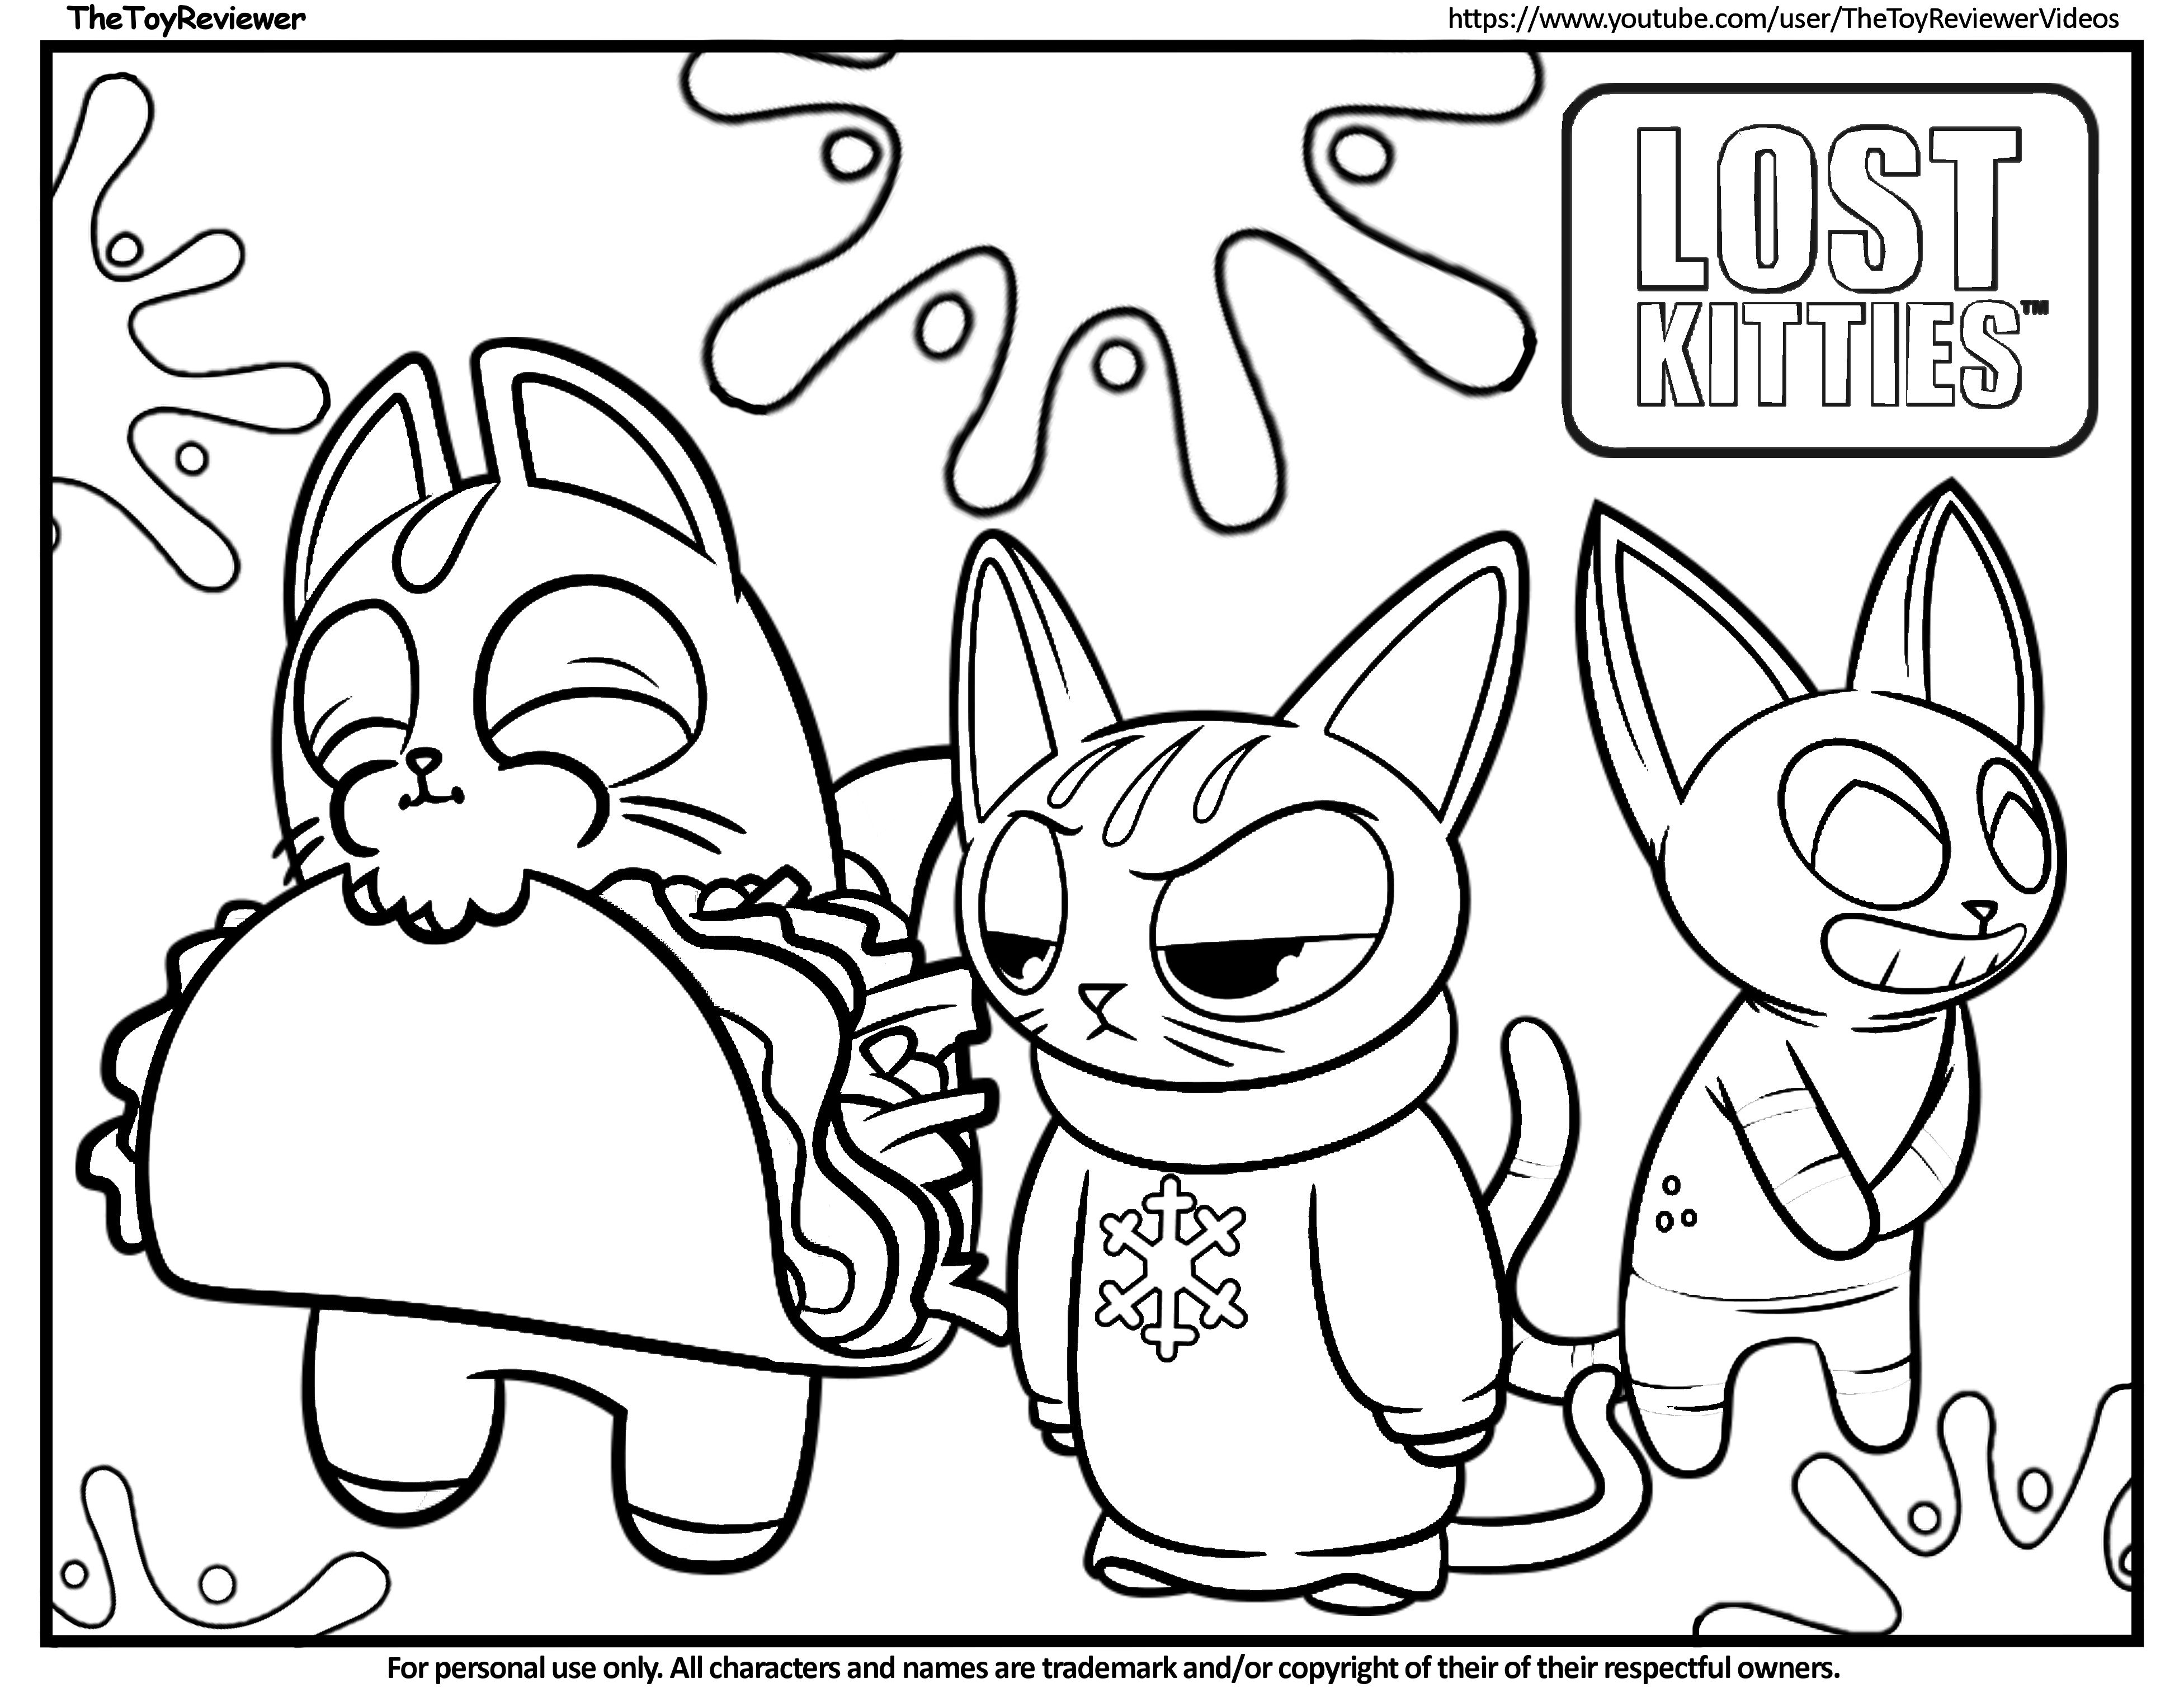 Here Is The Lost Kitties Coloring Page Click The Picture